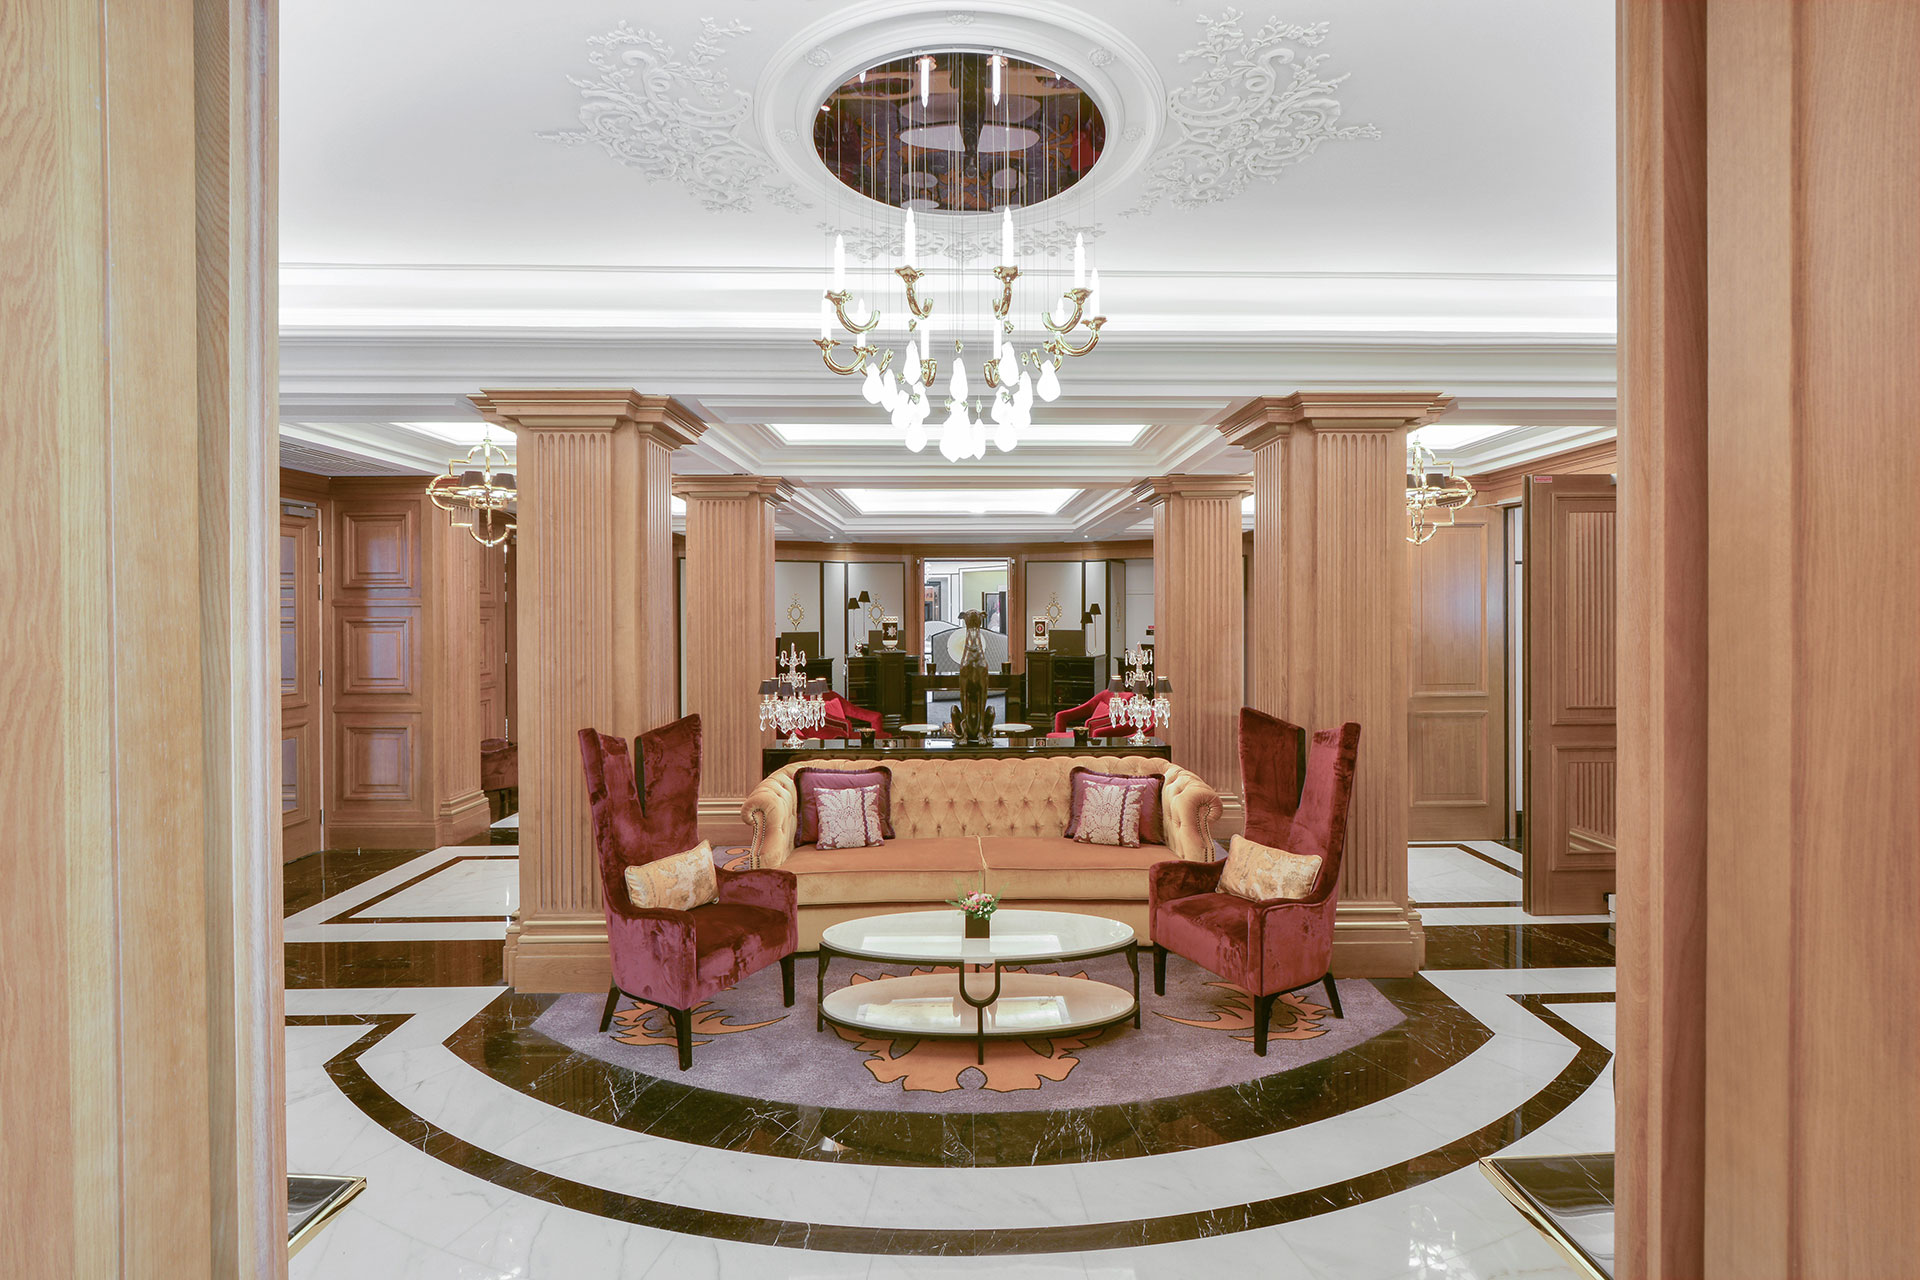 Lobby-Maison_Astor_Paris